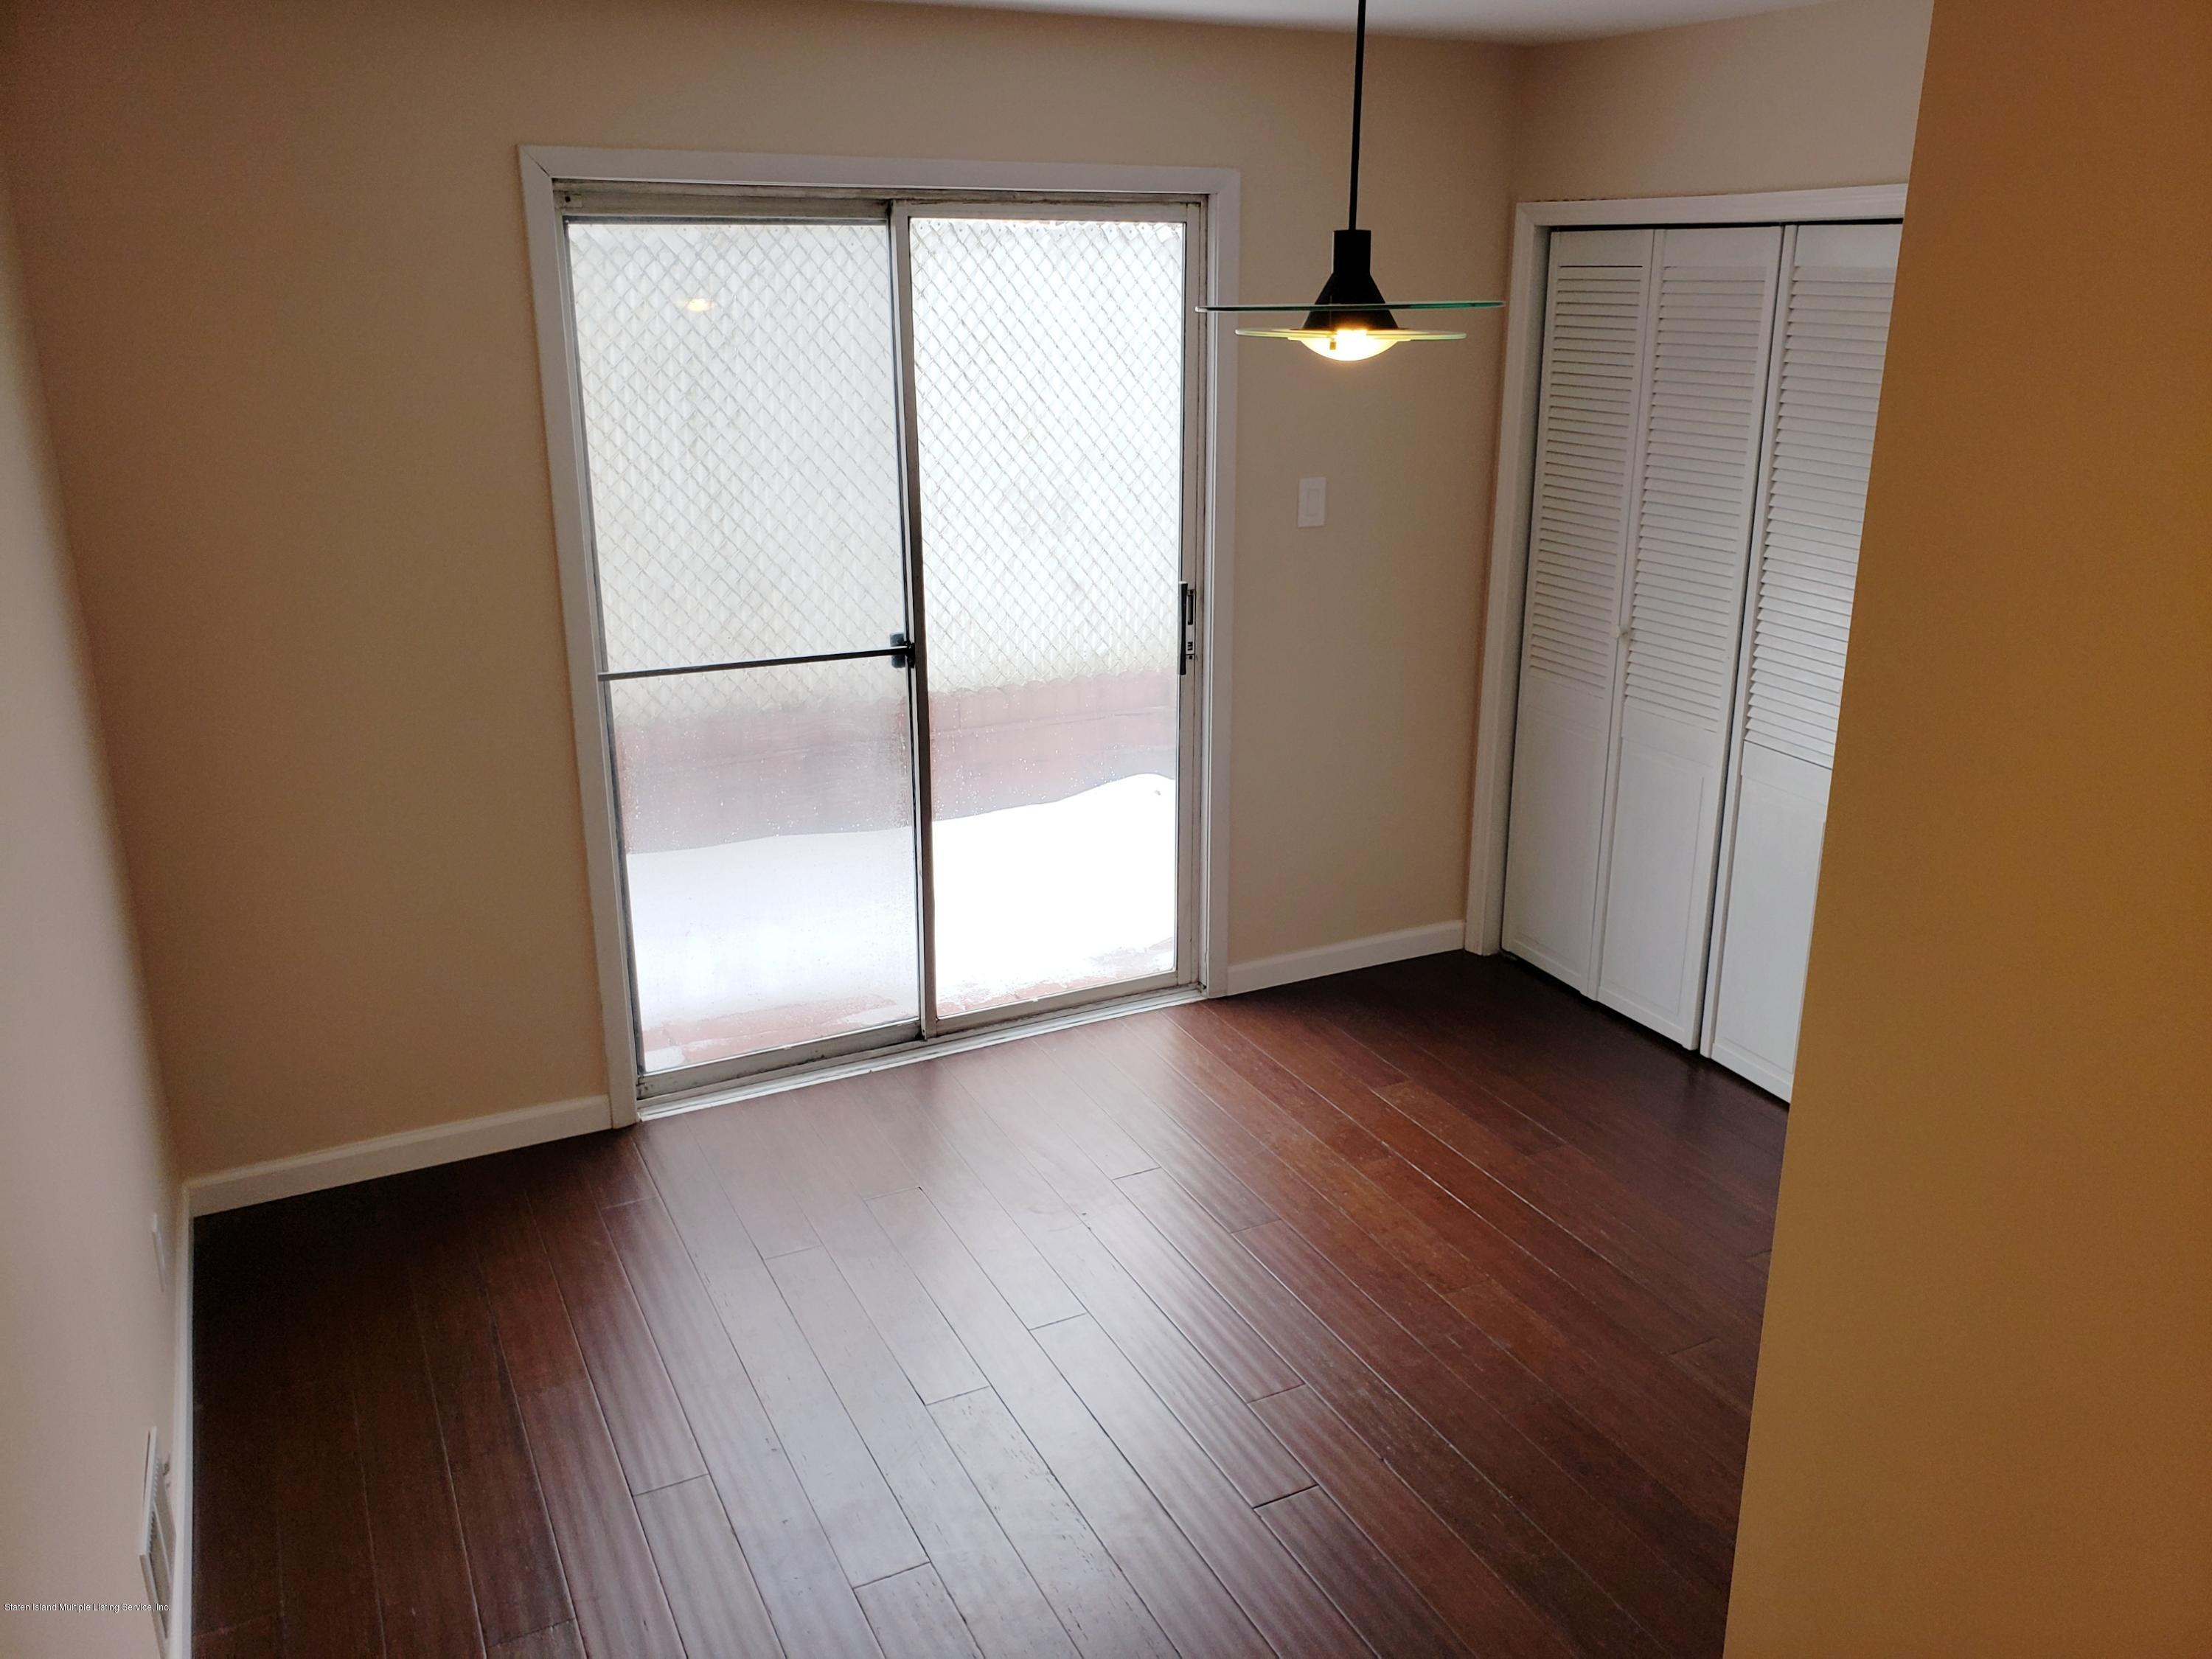 Single Family - Attached 31 Gail Court  Staten Island, NY 10306, MLS-1127035-2